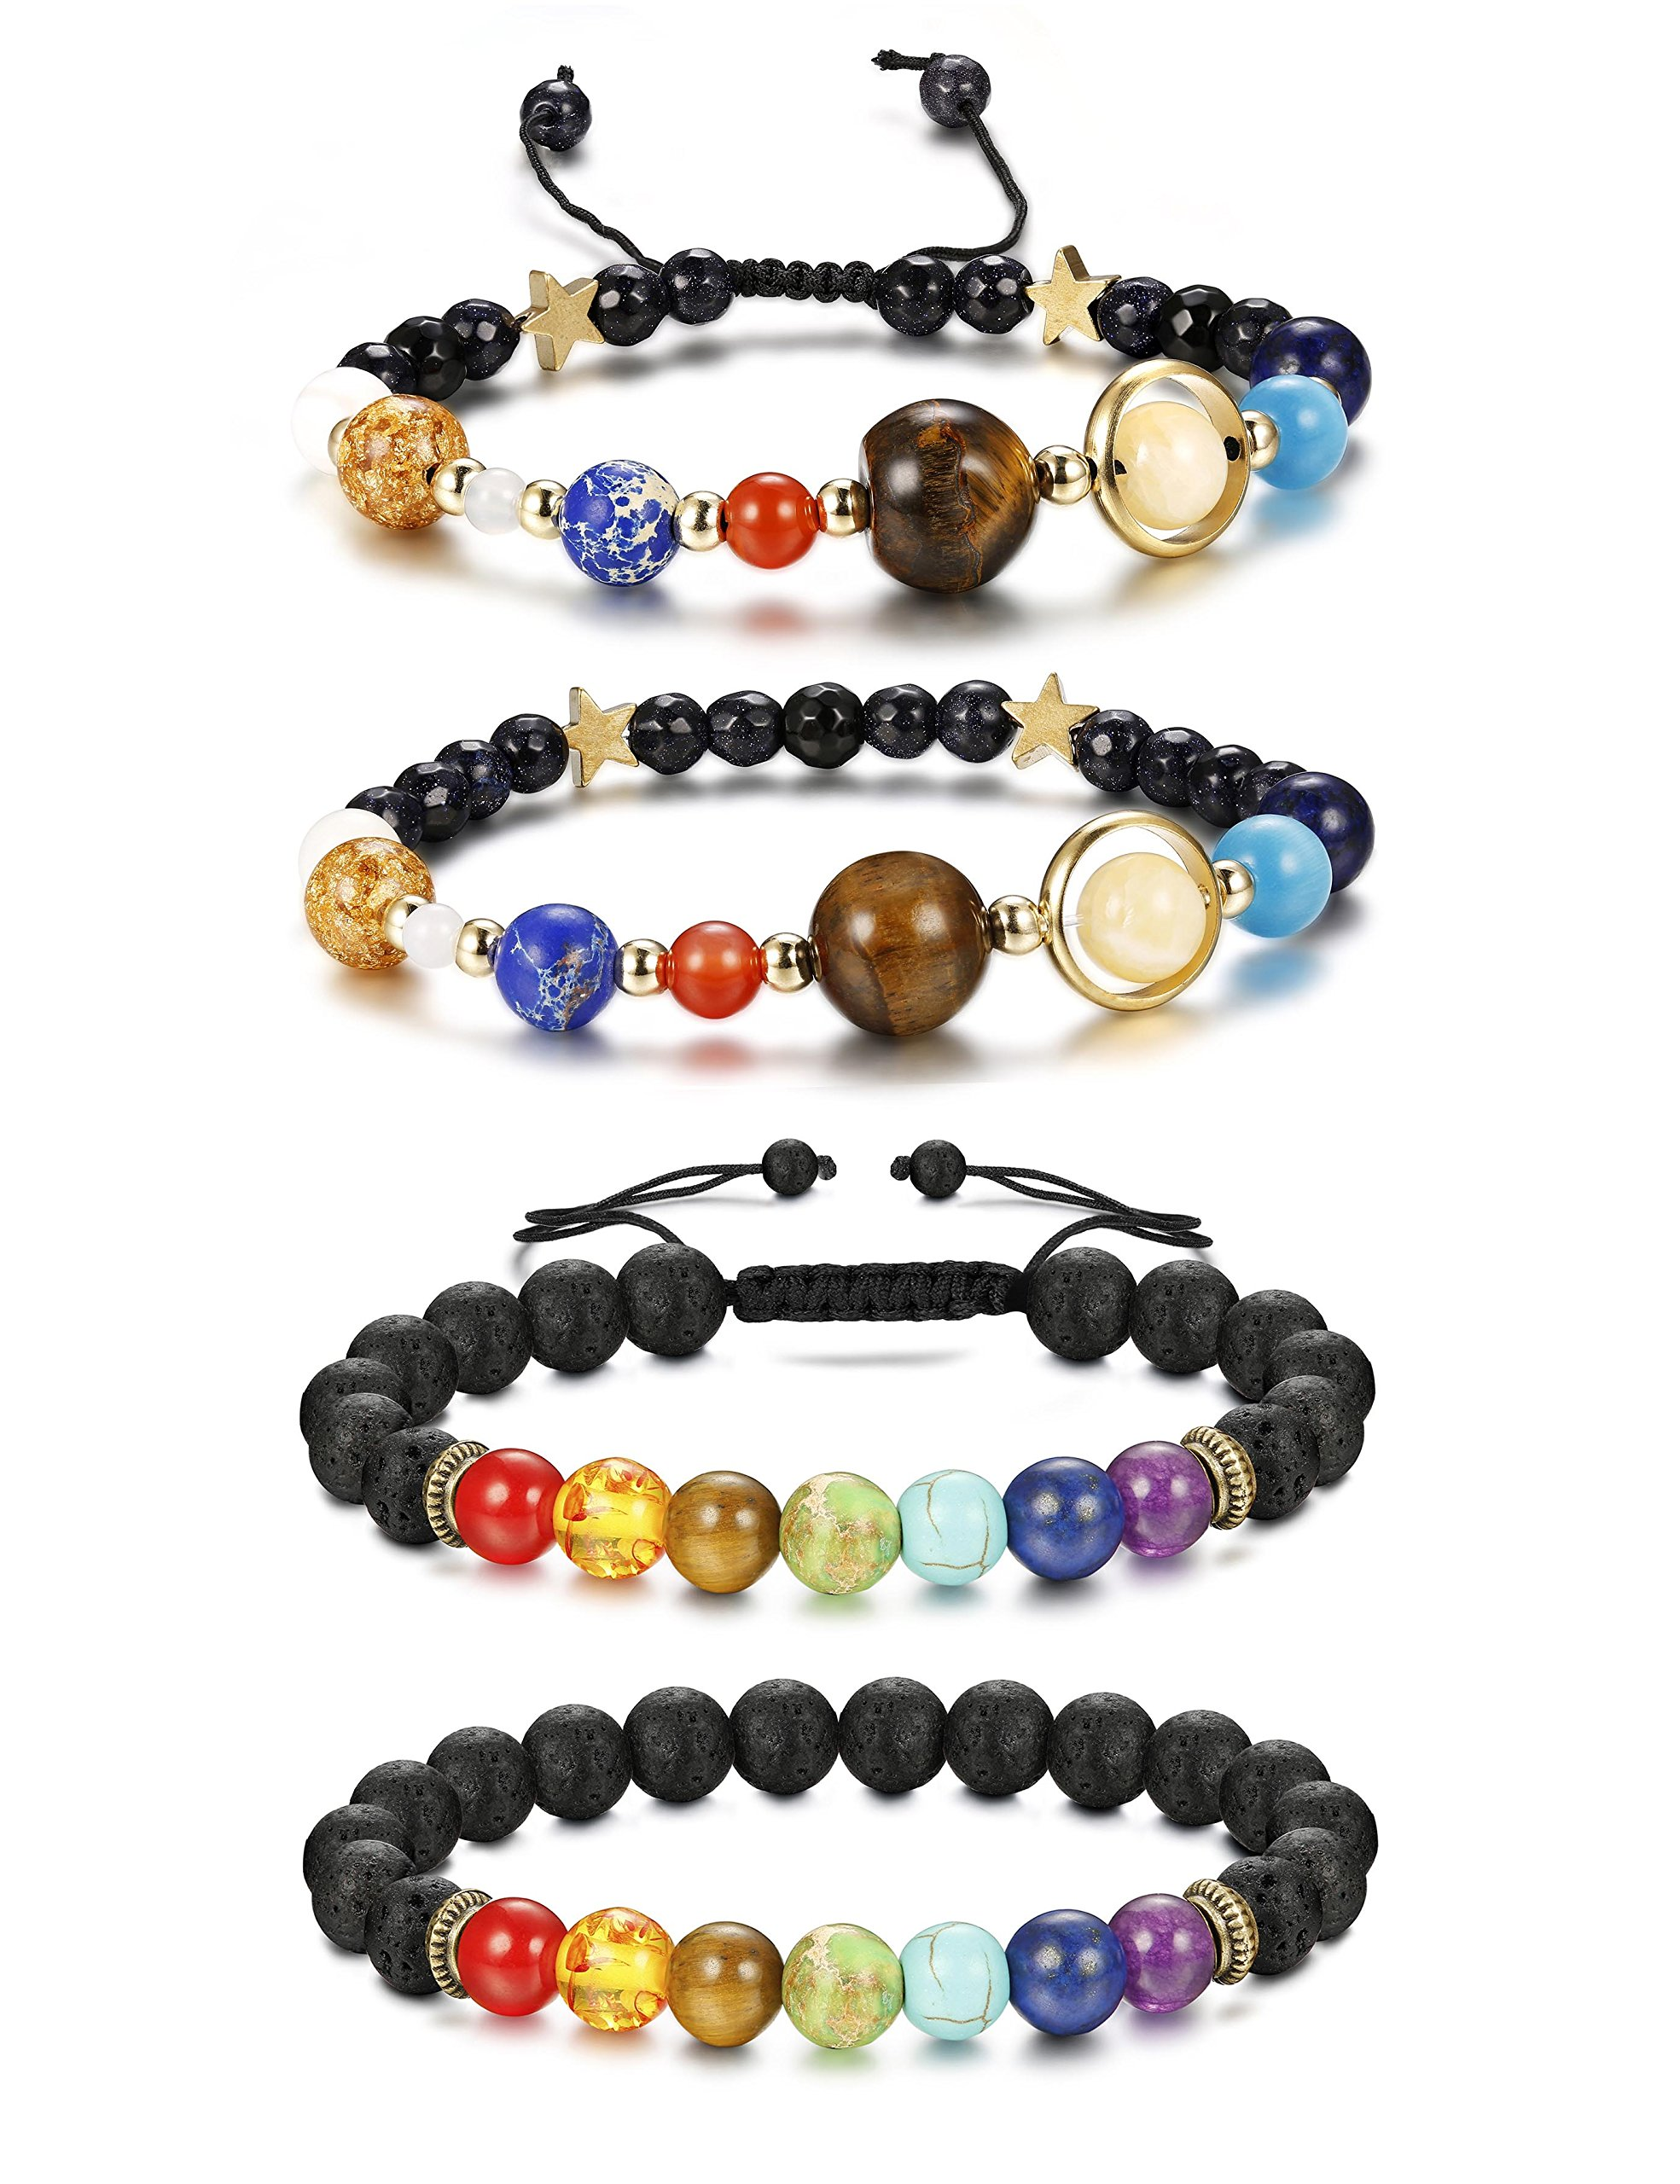 Finrezio 4 Pcs Bead Bracelets for Women Men Solar System & Chakra Stone Diffuser Bracelets Set Aromatherapy Yoga Bracelet 8MM Beaded